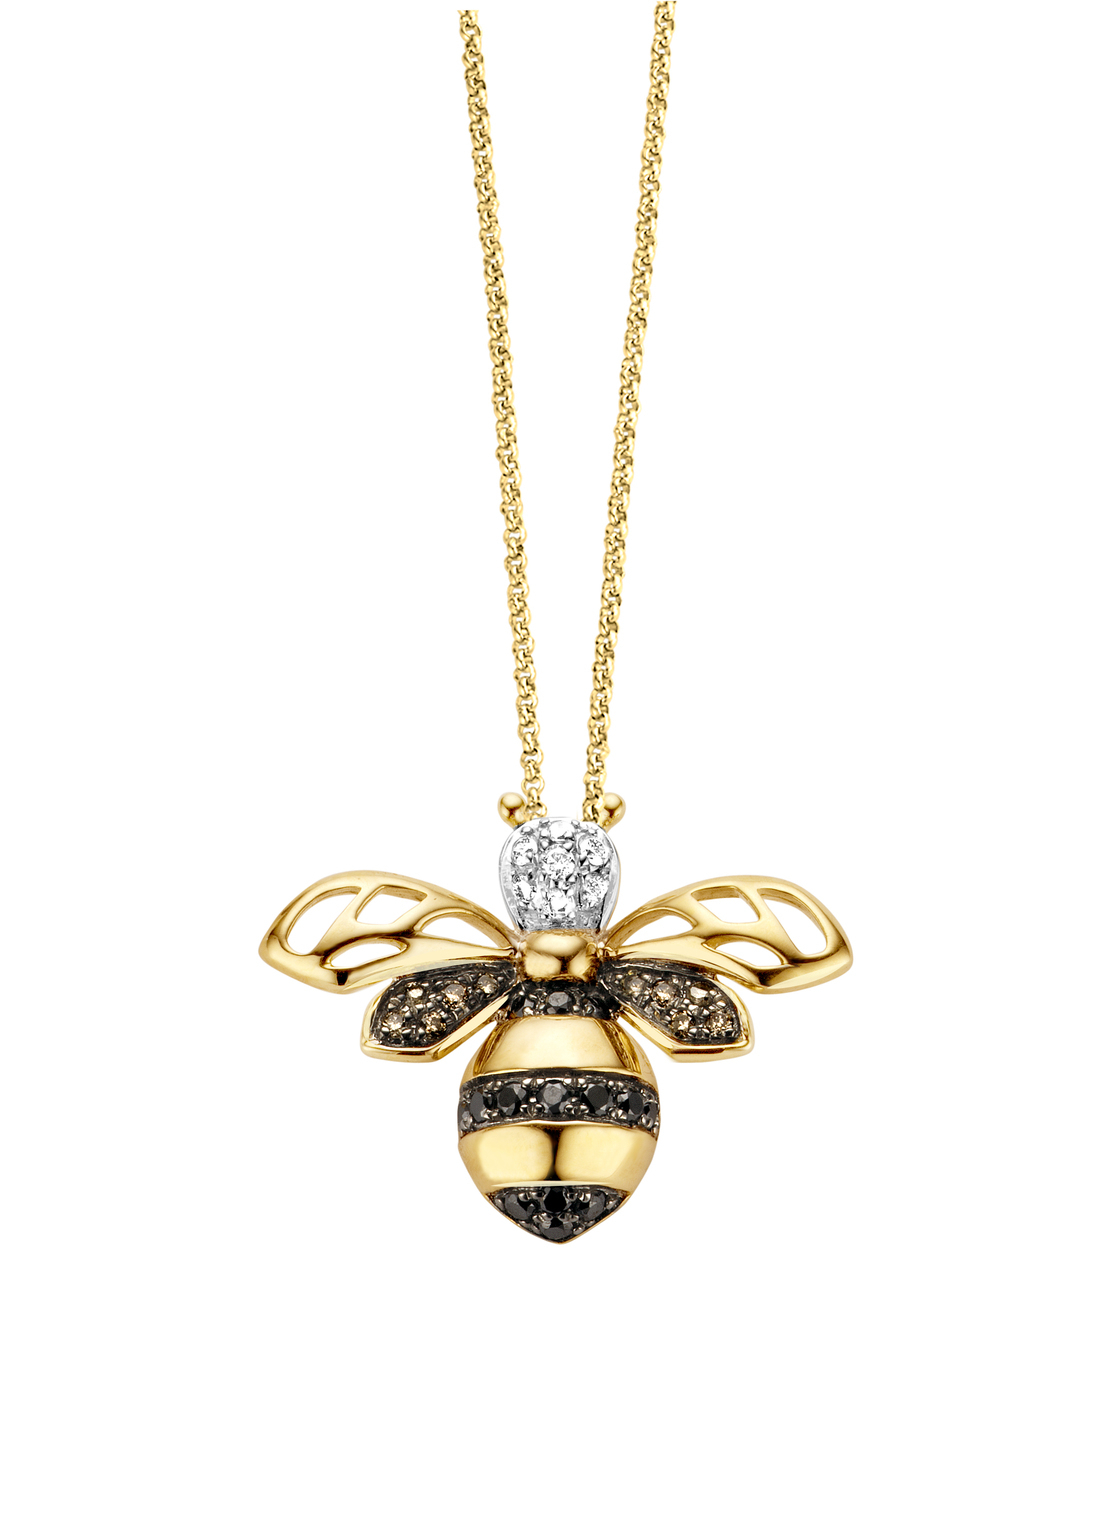 Queen Bee Pendant In 14 Karat Yellow Gold Throughout 2019 Queen Bee Pendant Necklaces (Gallery 5 of 25)